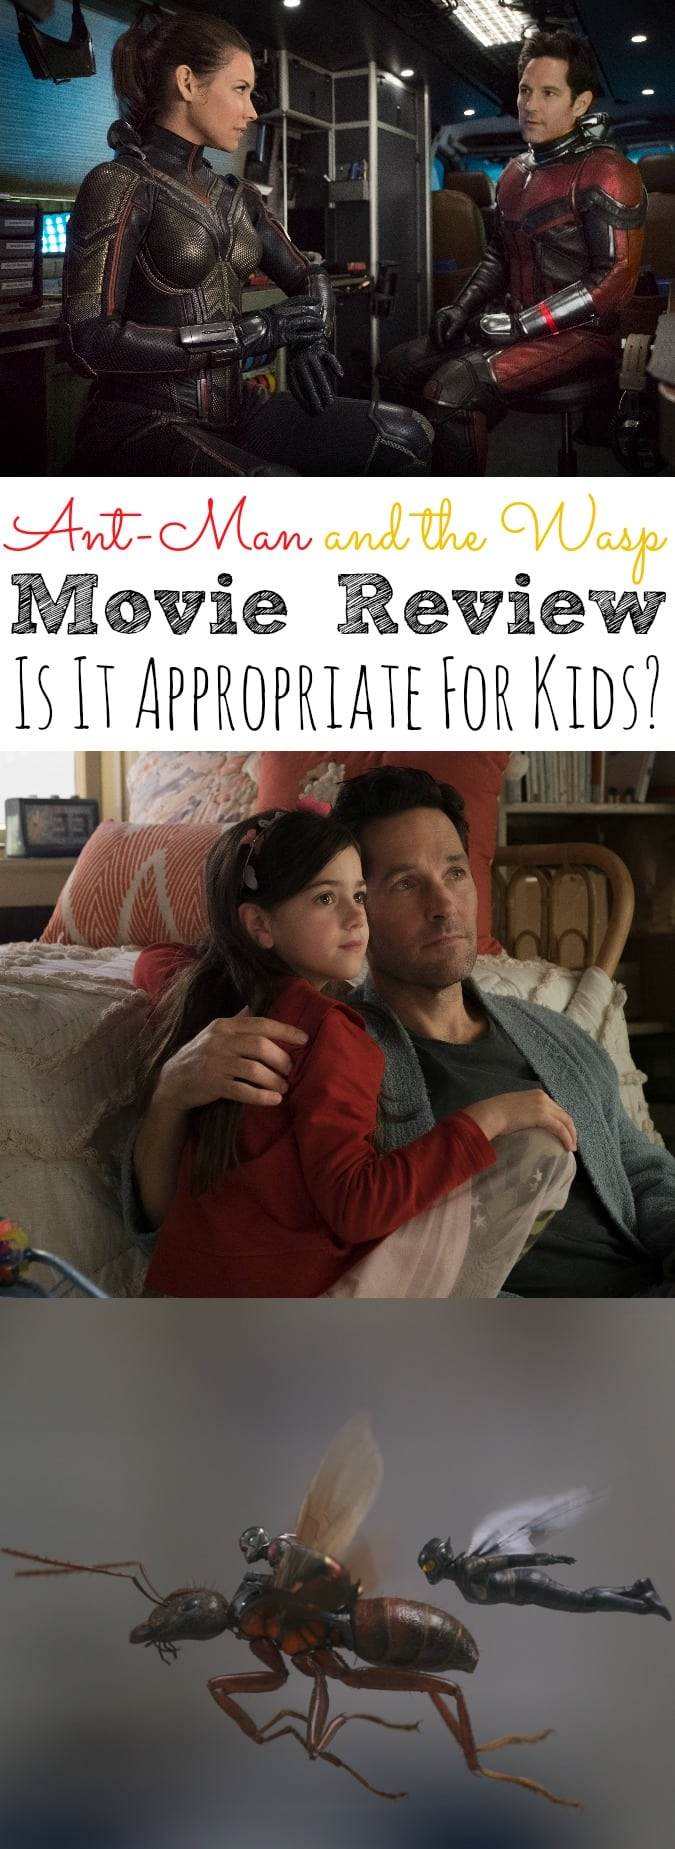 Ant-Man and the Wasp Movie Review Is It Appropriate for Kids?